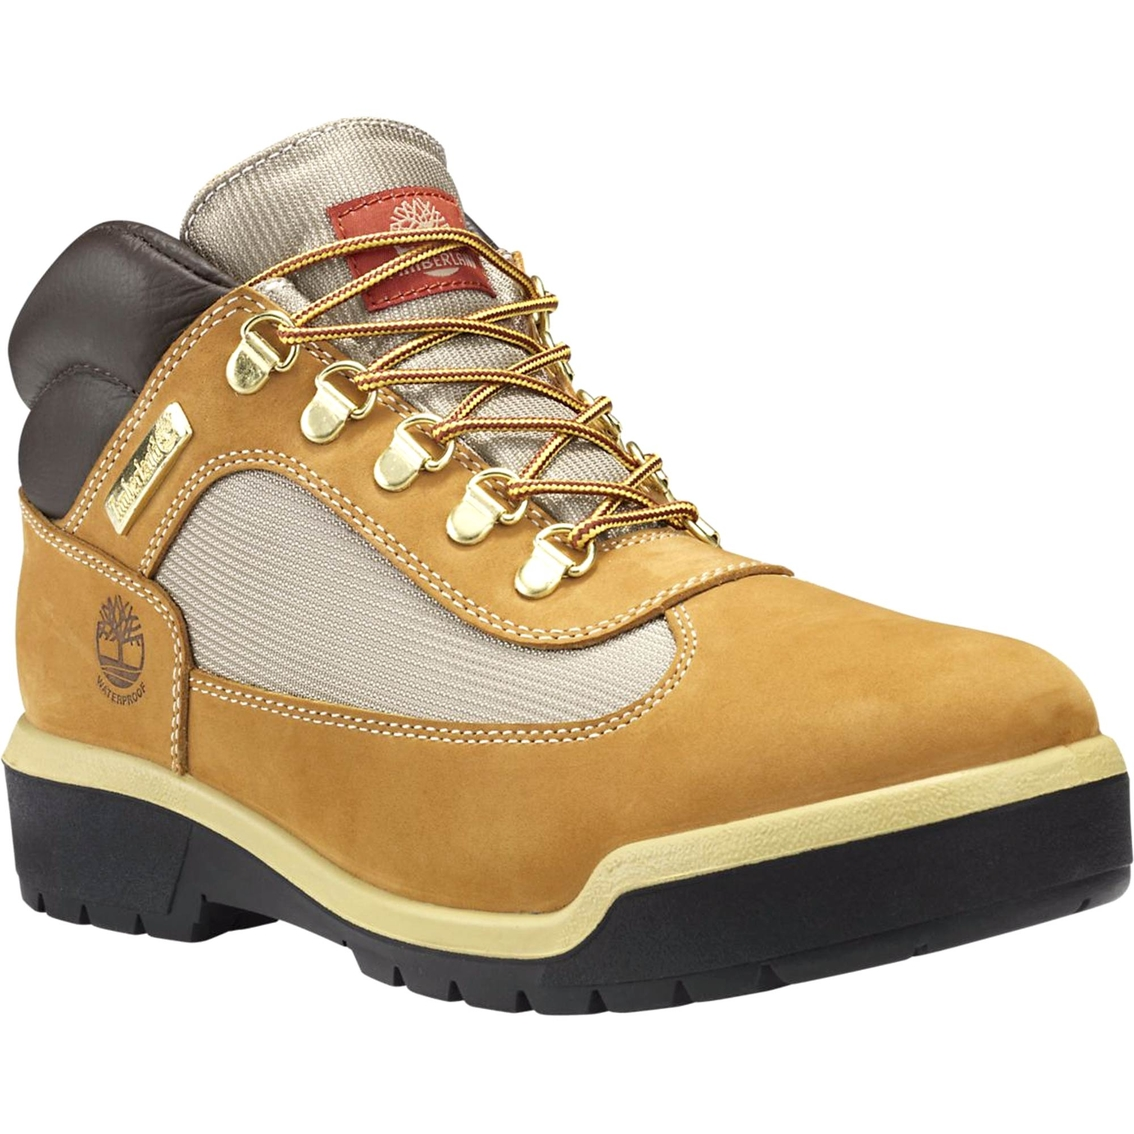 Timberland Boots Hot Sale TIMBERLAND MENS ICON FIELD BOOT